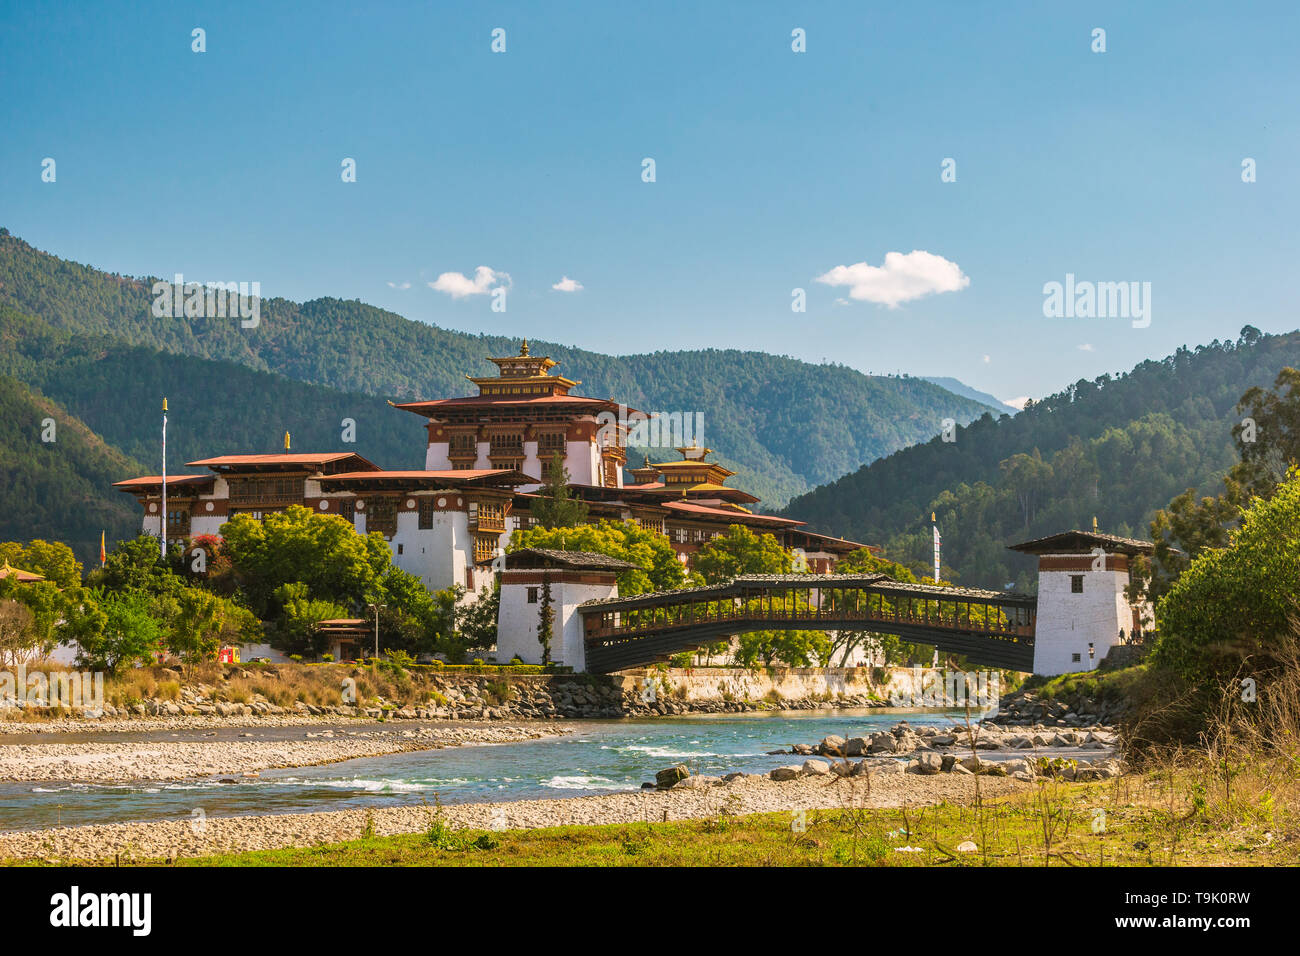 The massive Punakha Dzong at the Mo Chhu River - Stock Image